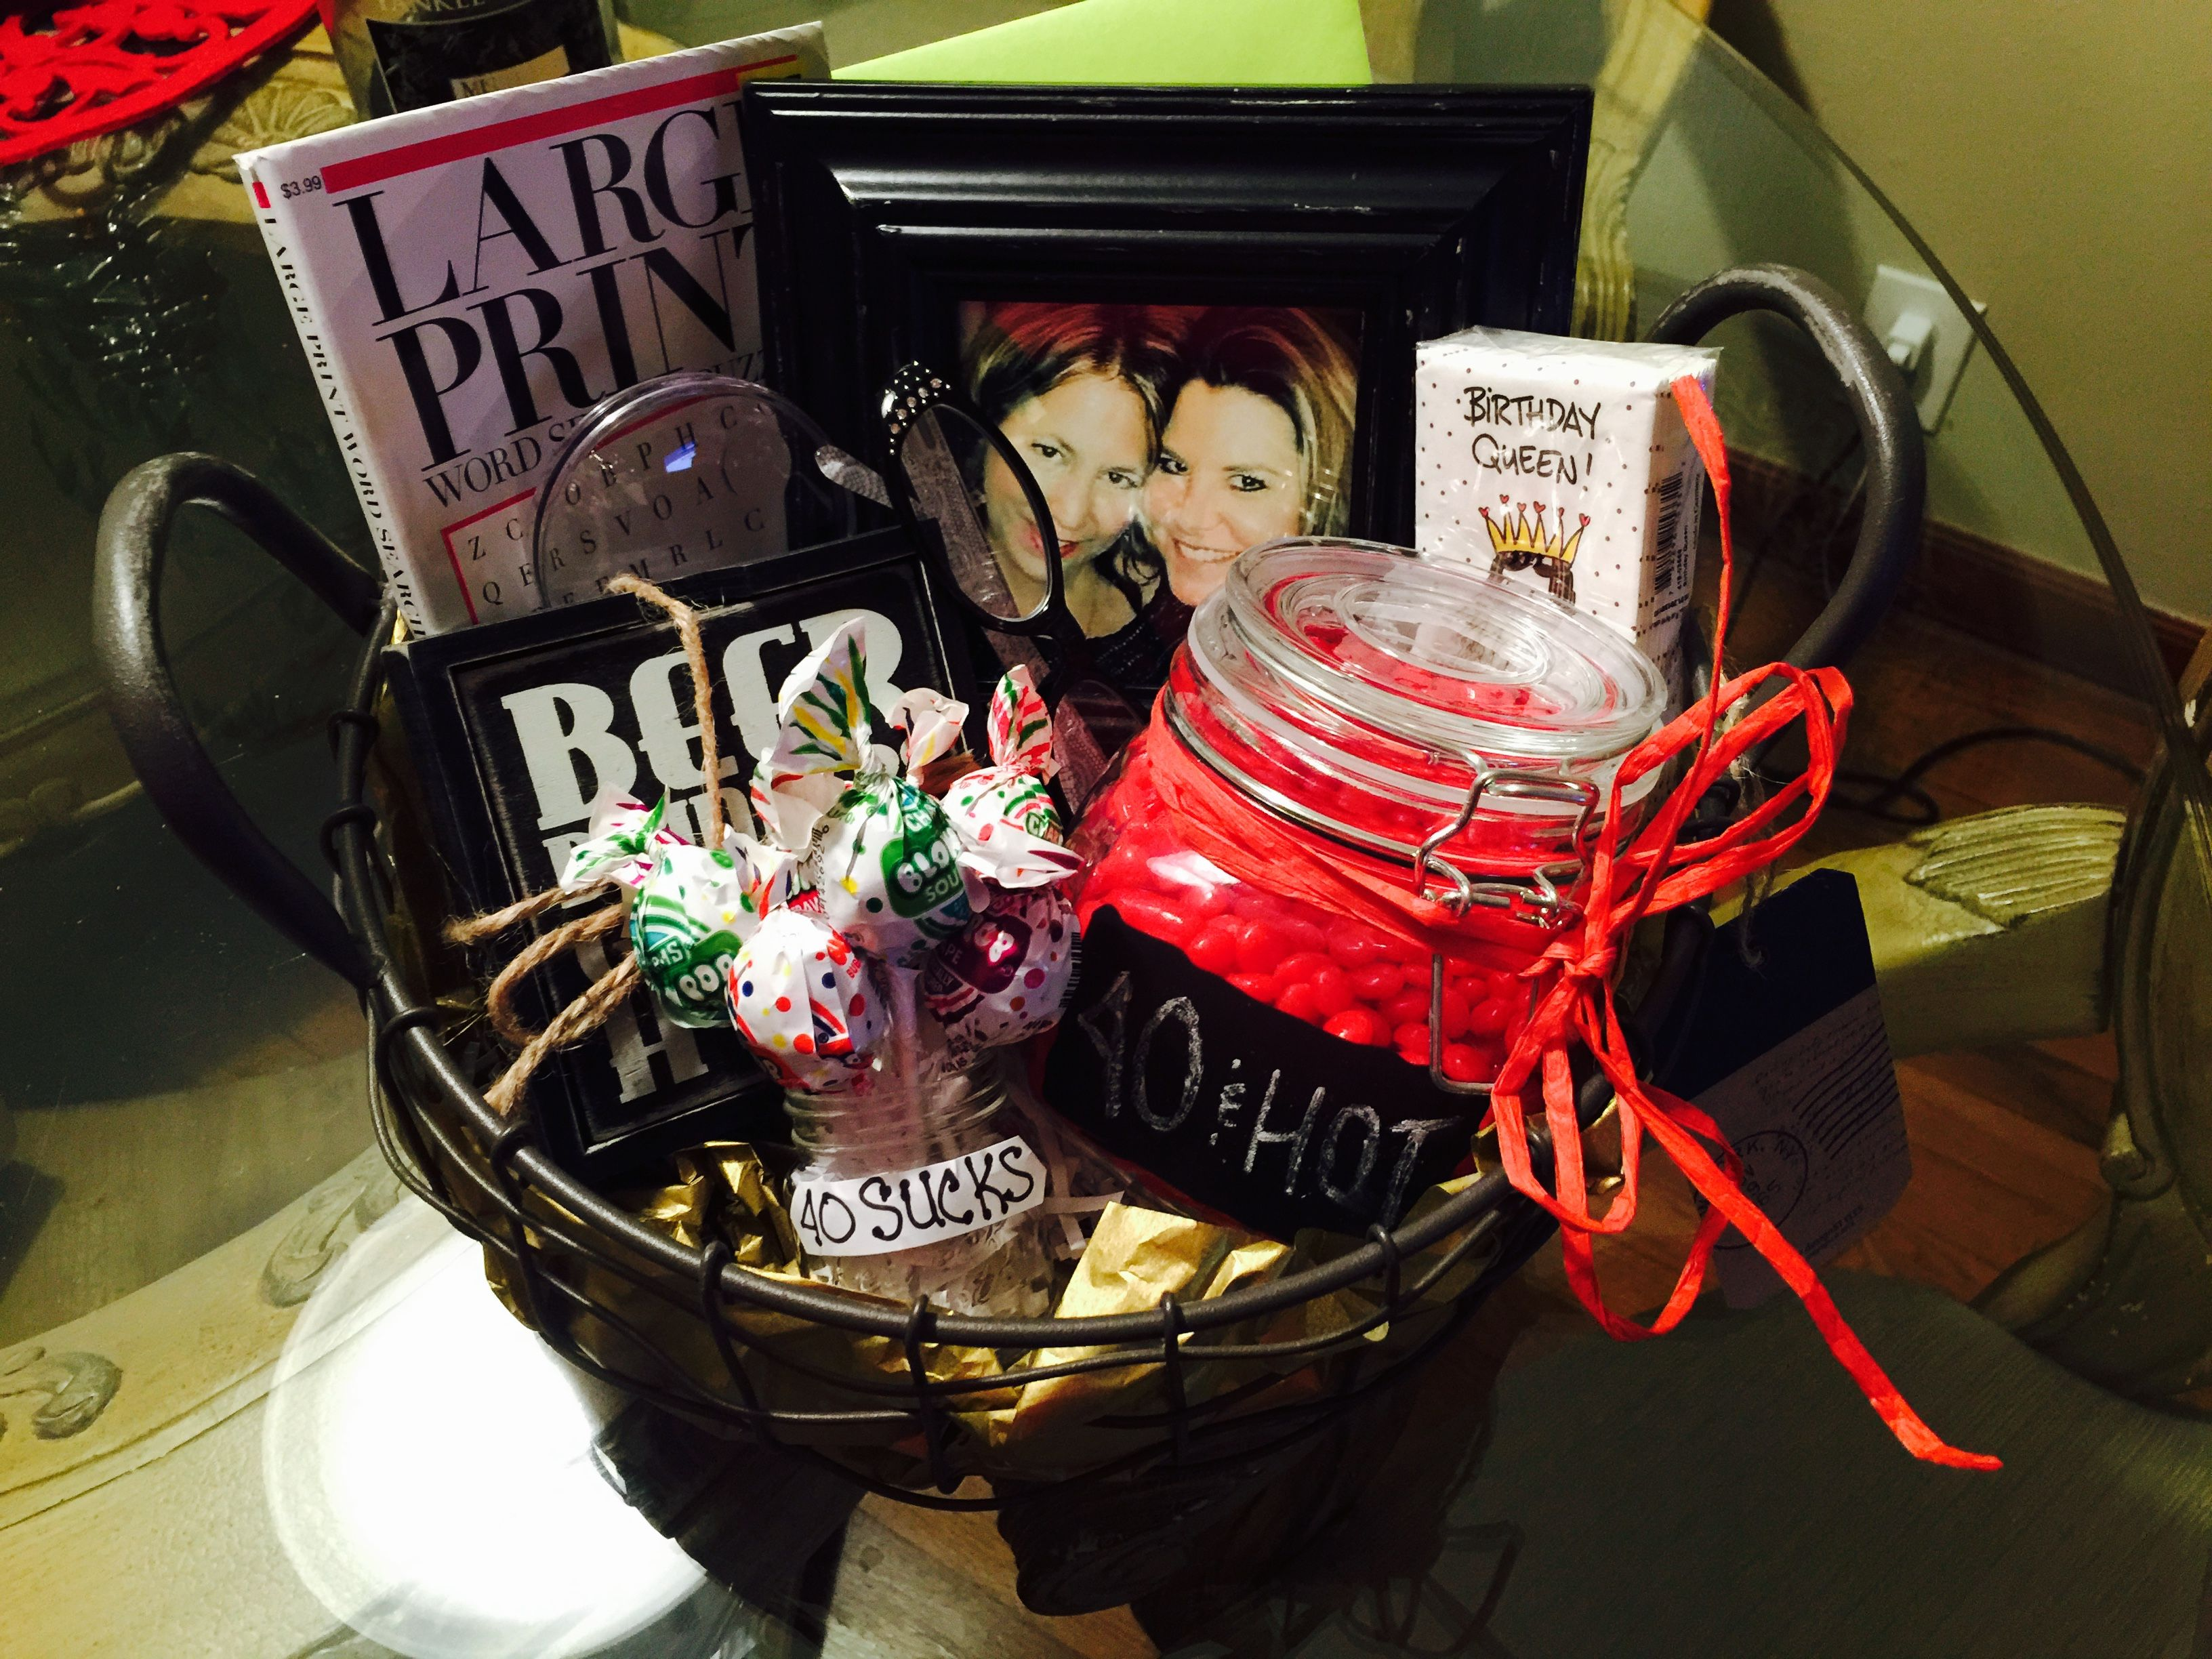 40th birthday gift basket for woman 40th birthday gifts